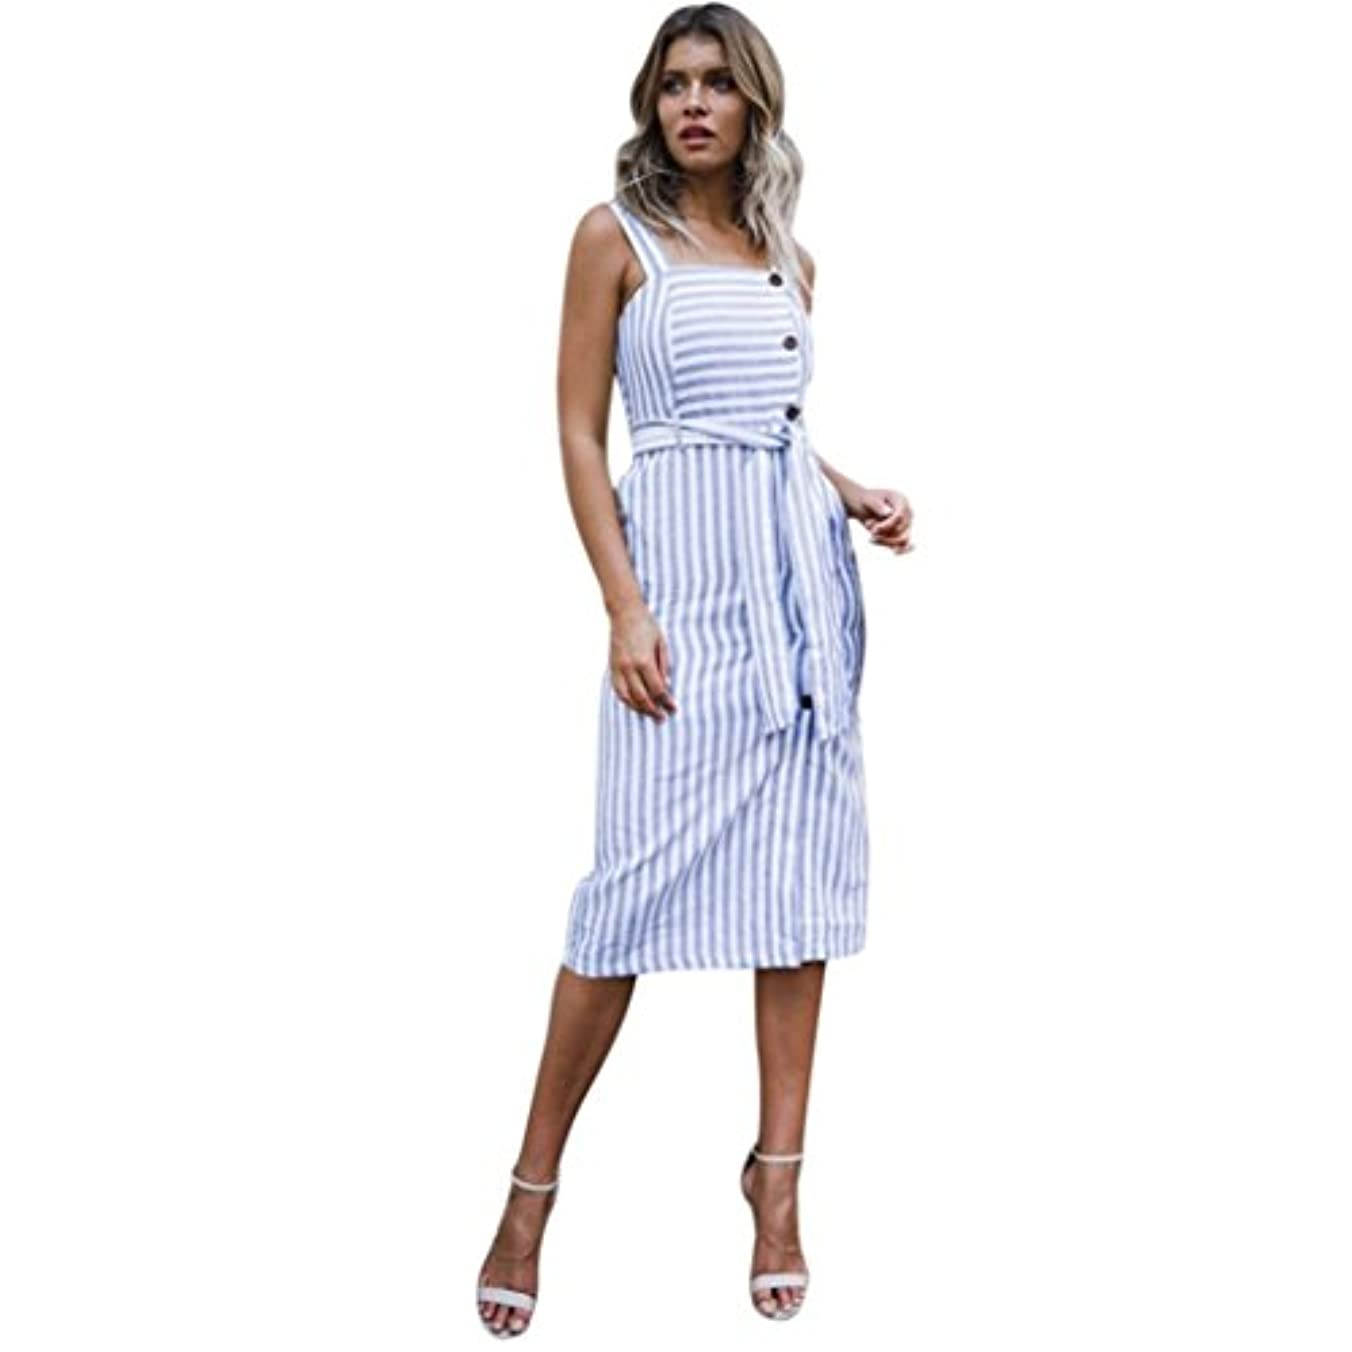 スポーツの試合を担当している人歩く合金SakuraBest Womens Summer Striped Button Down Dress,Shoulder Strap Knee-Length Dress for Girls (M)